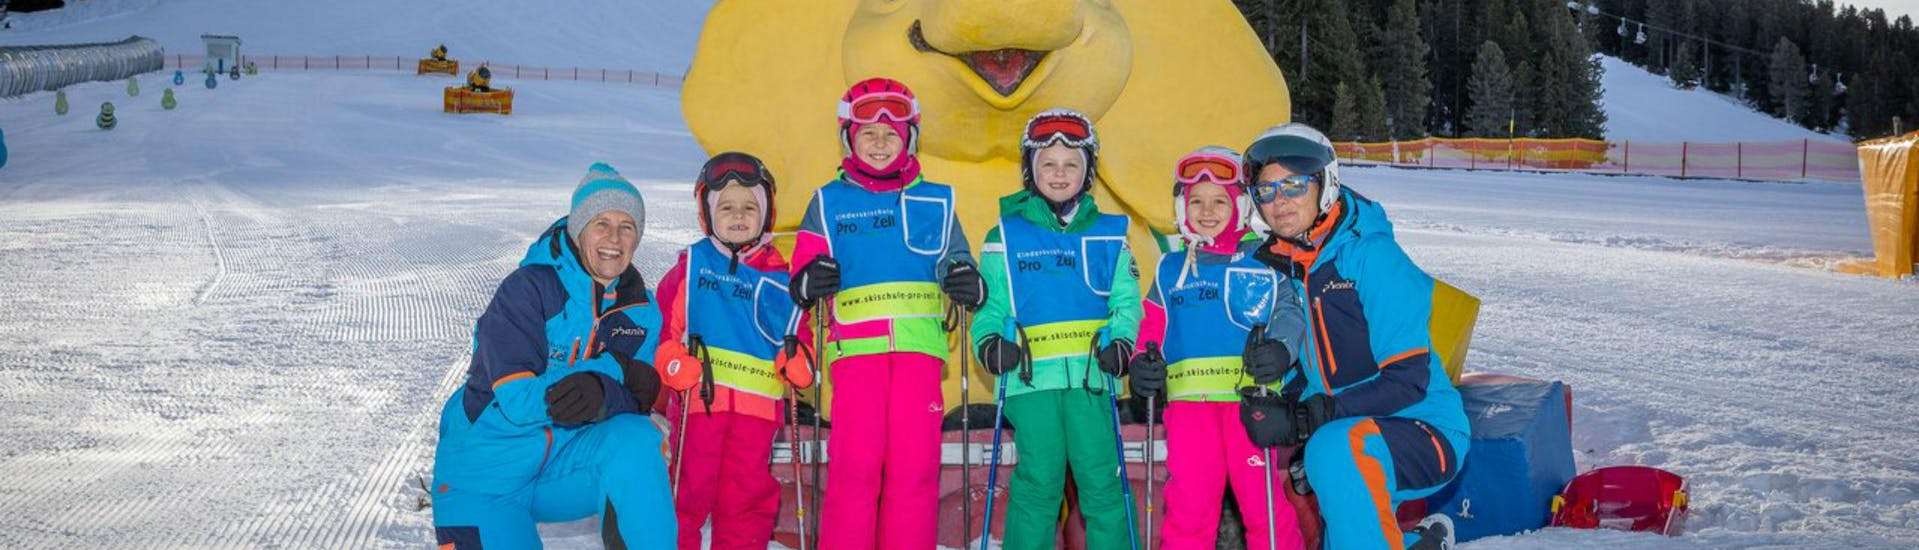 A group of children and their two ski instructors from the ski school Skischule Pro Zell in Zell am Ziller are posing for a photo in the Kinderland area during their Private Ski Lessons for Kids.